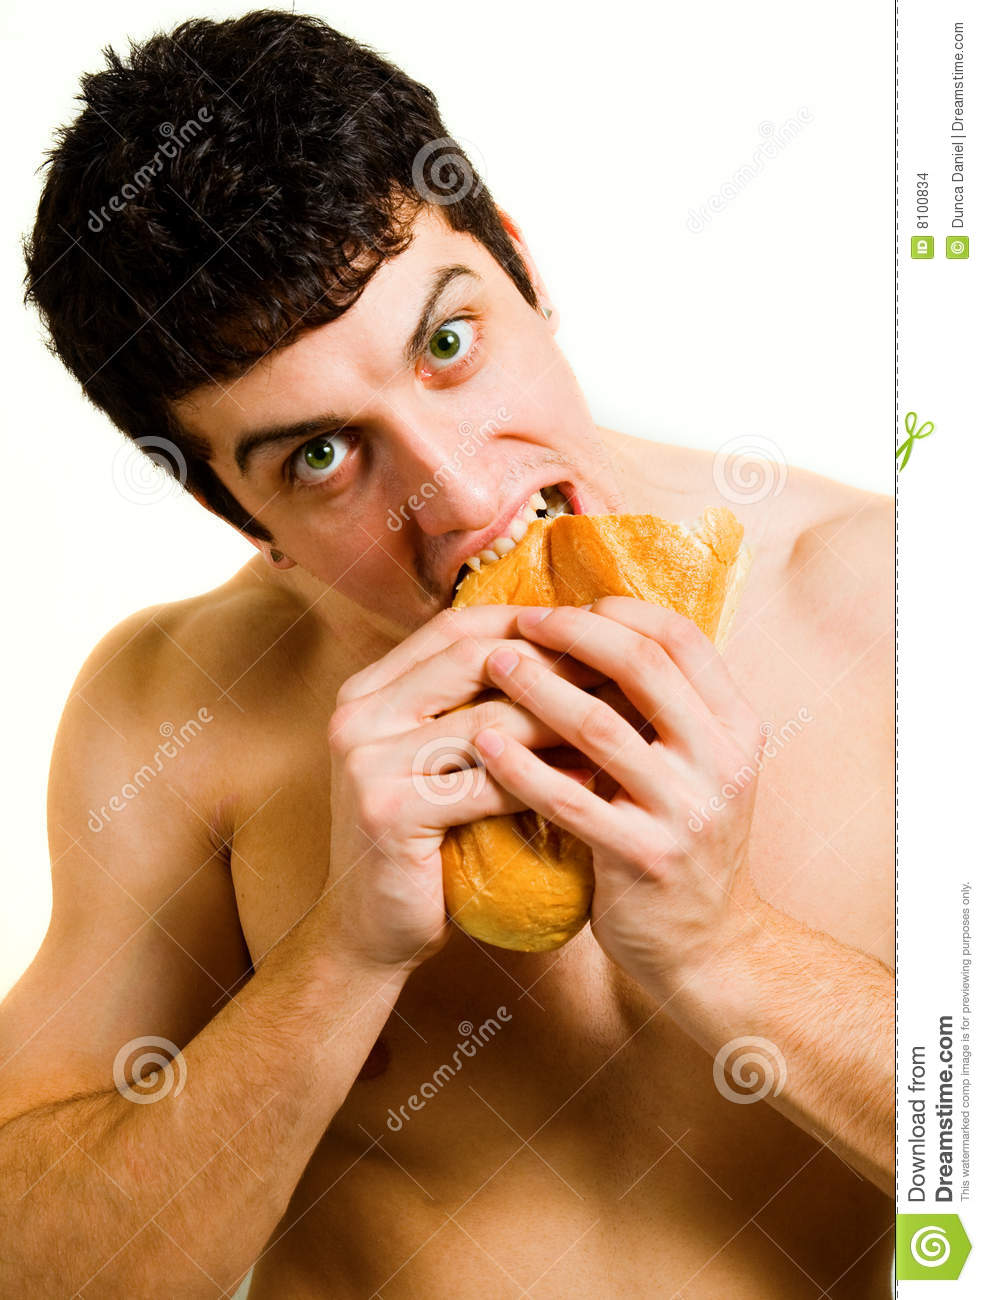 Unhealthy Food - Hungry Man Eating Bread Stock Images - Image: 8100834